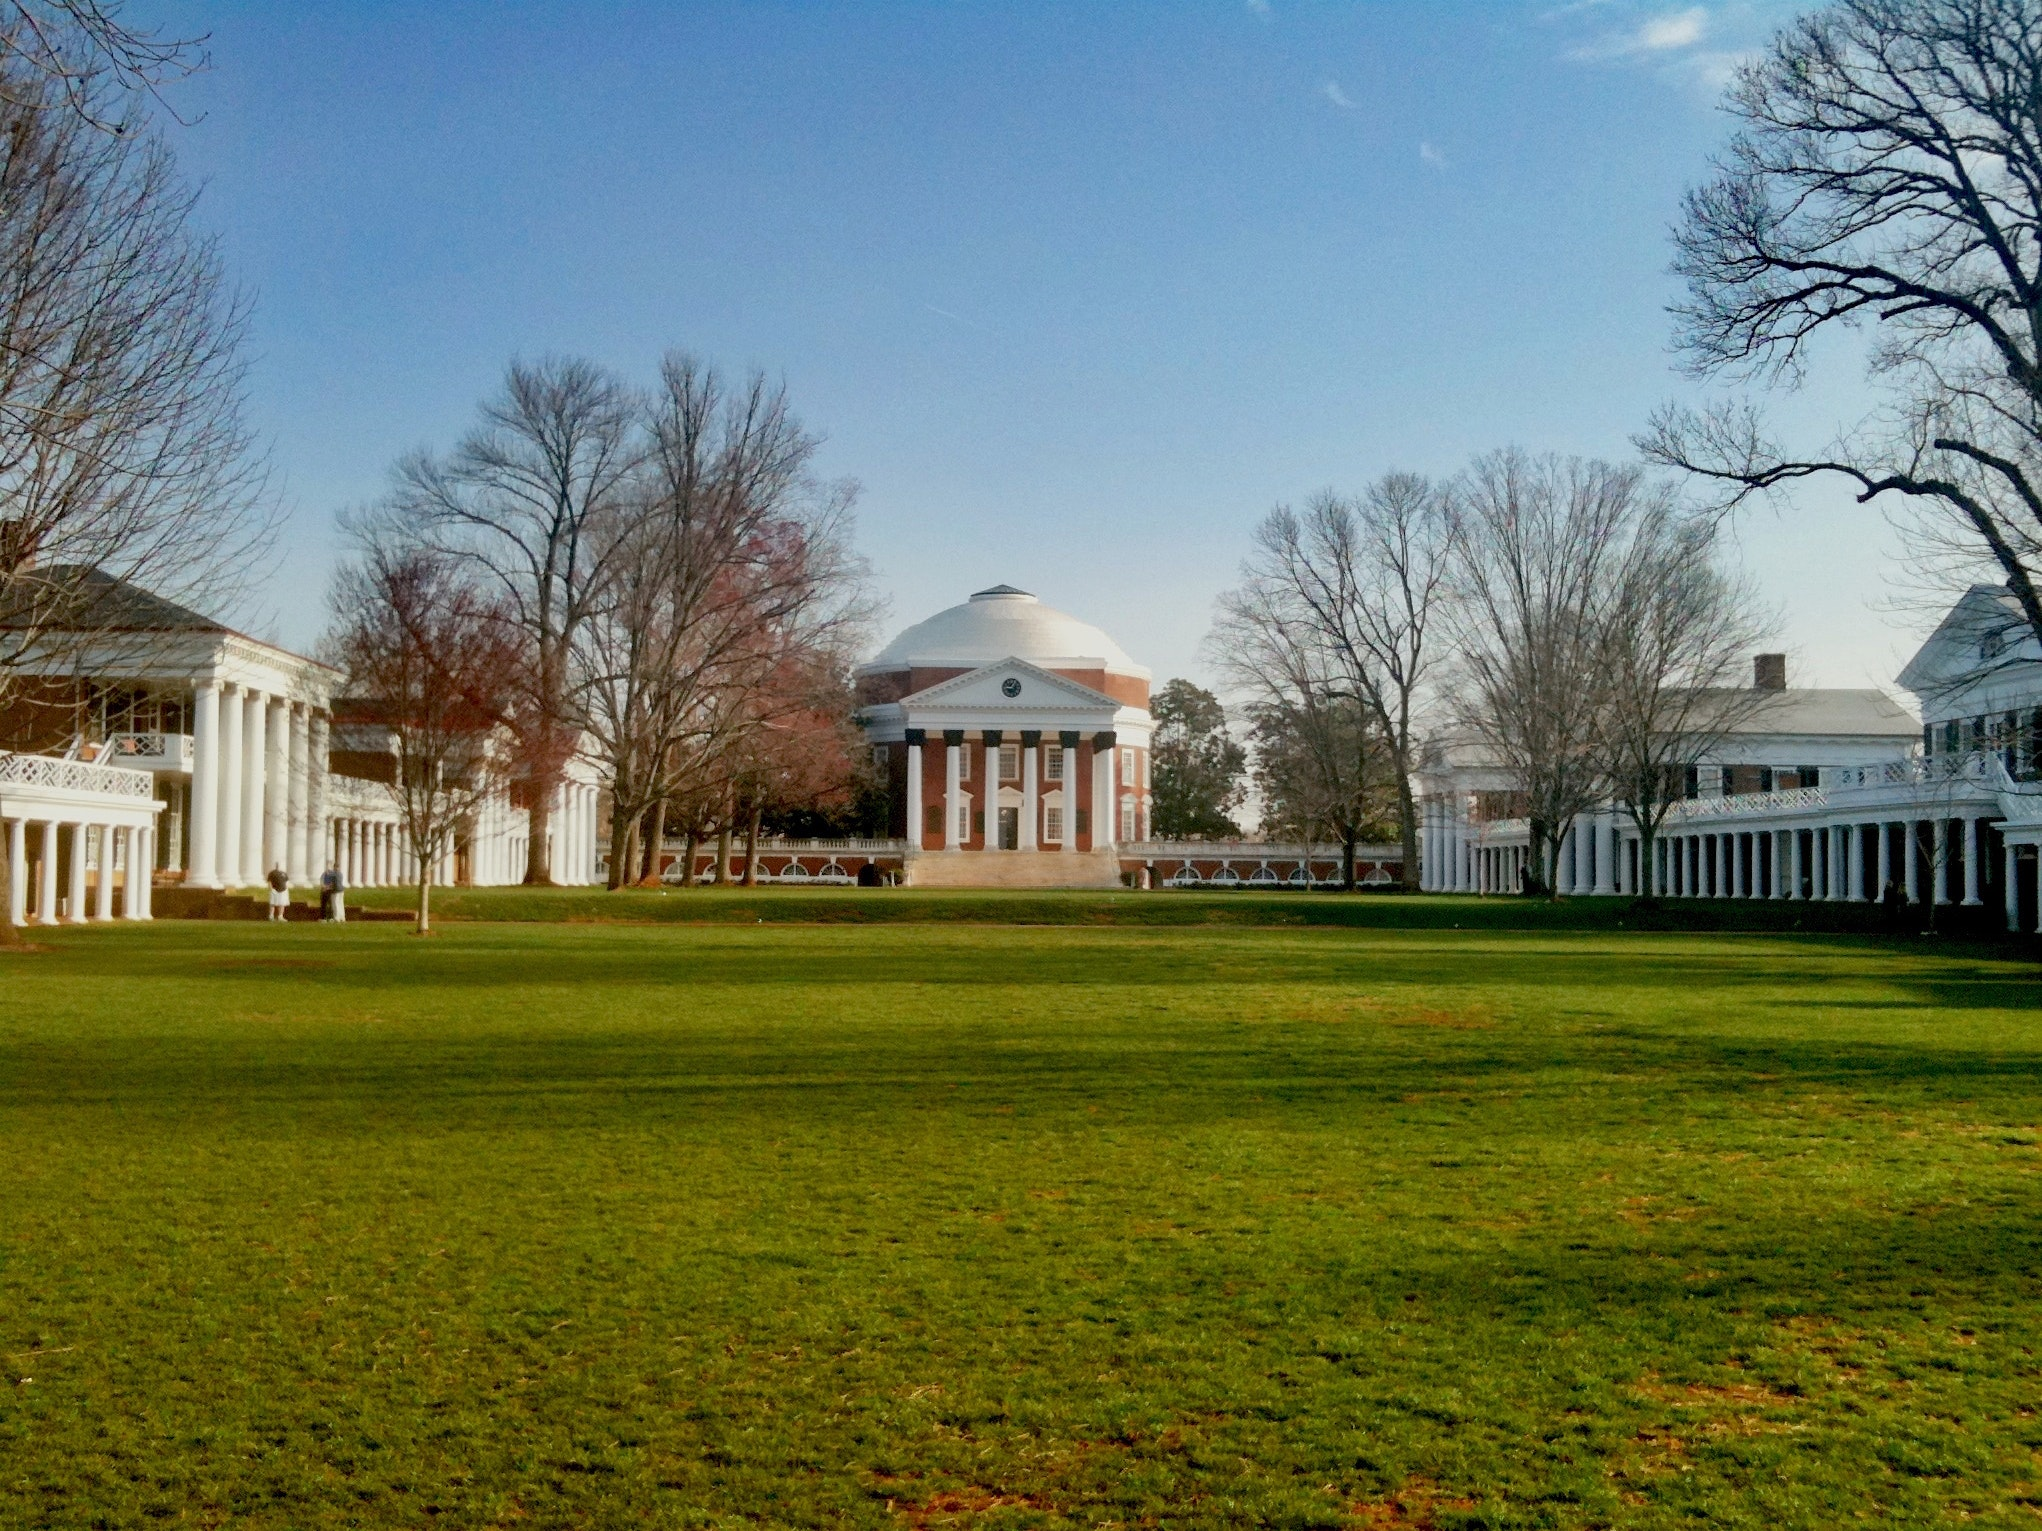 University of Virginia's Rotunda.